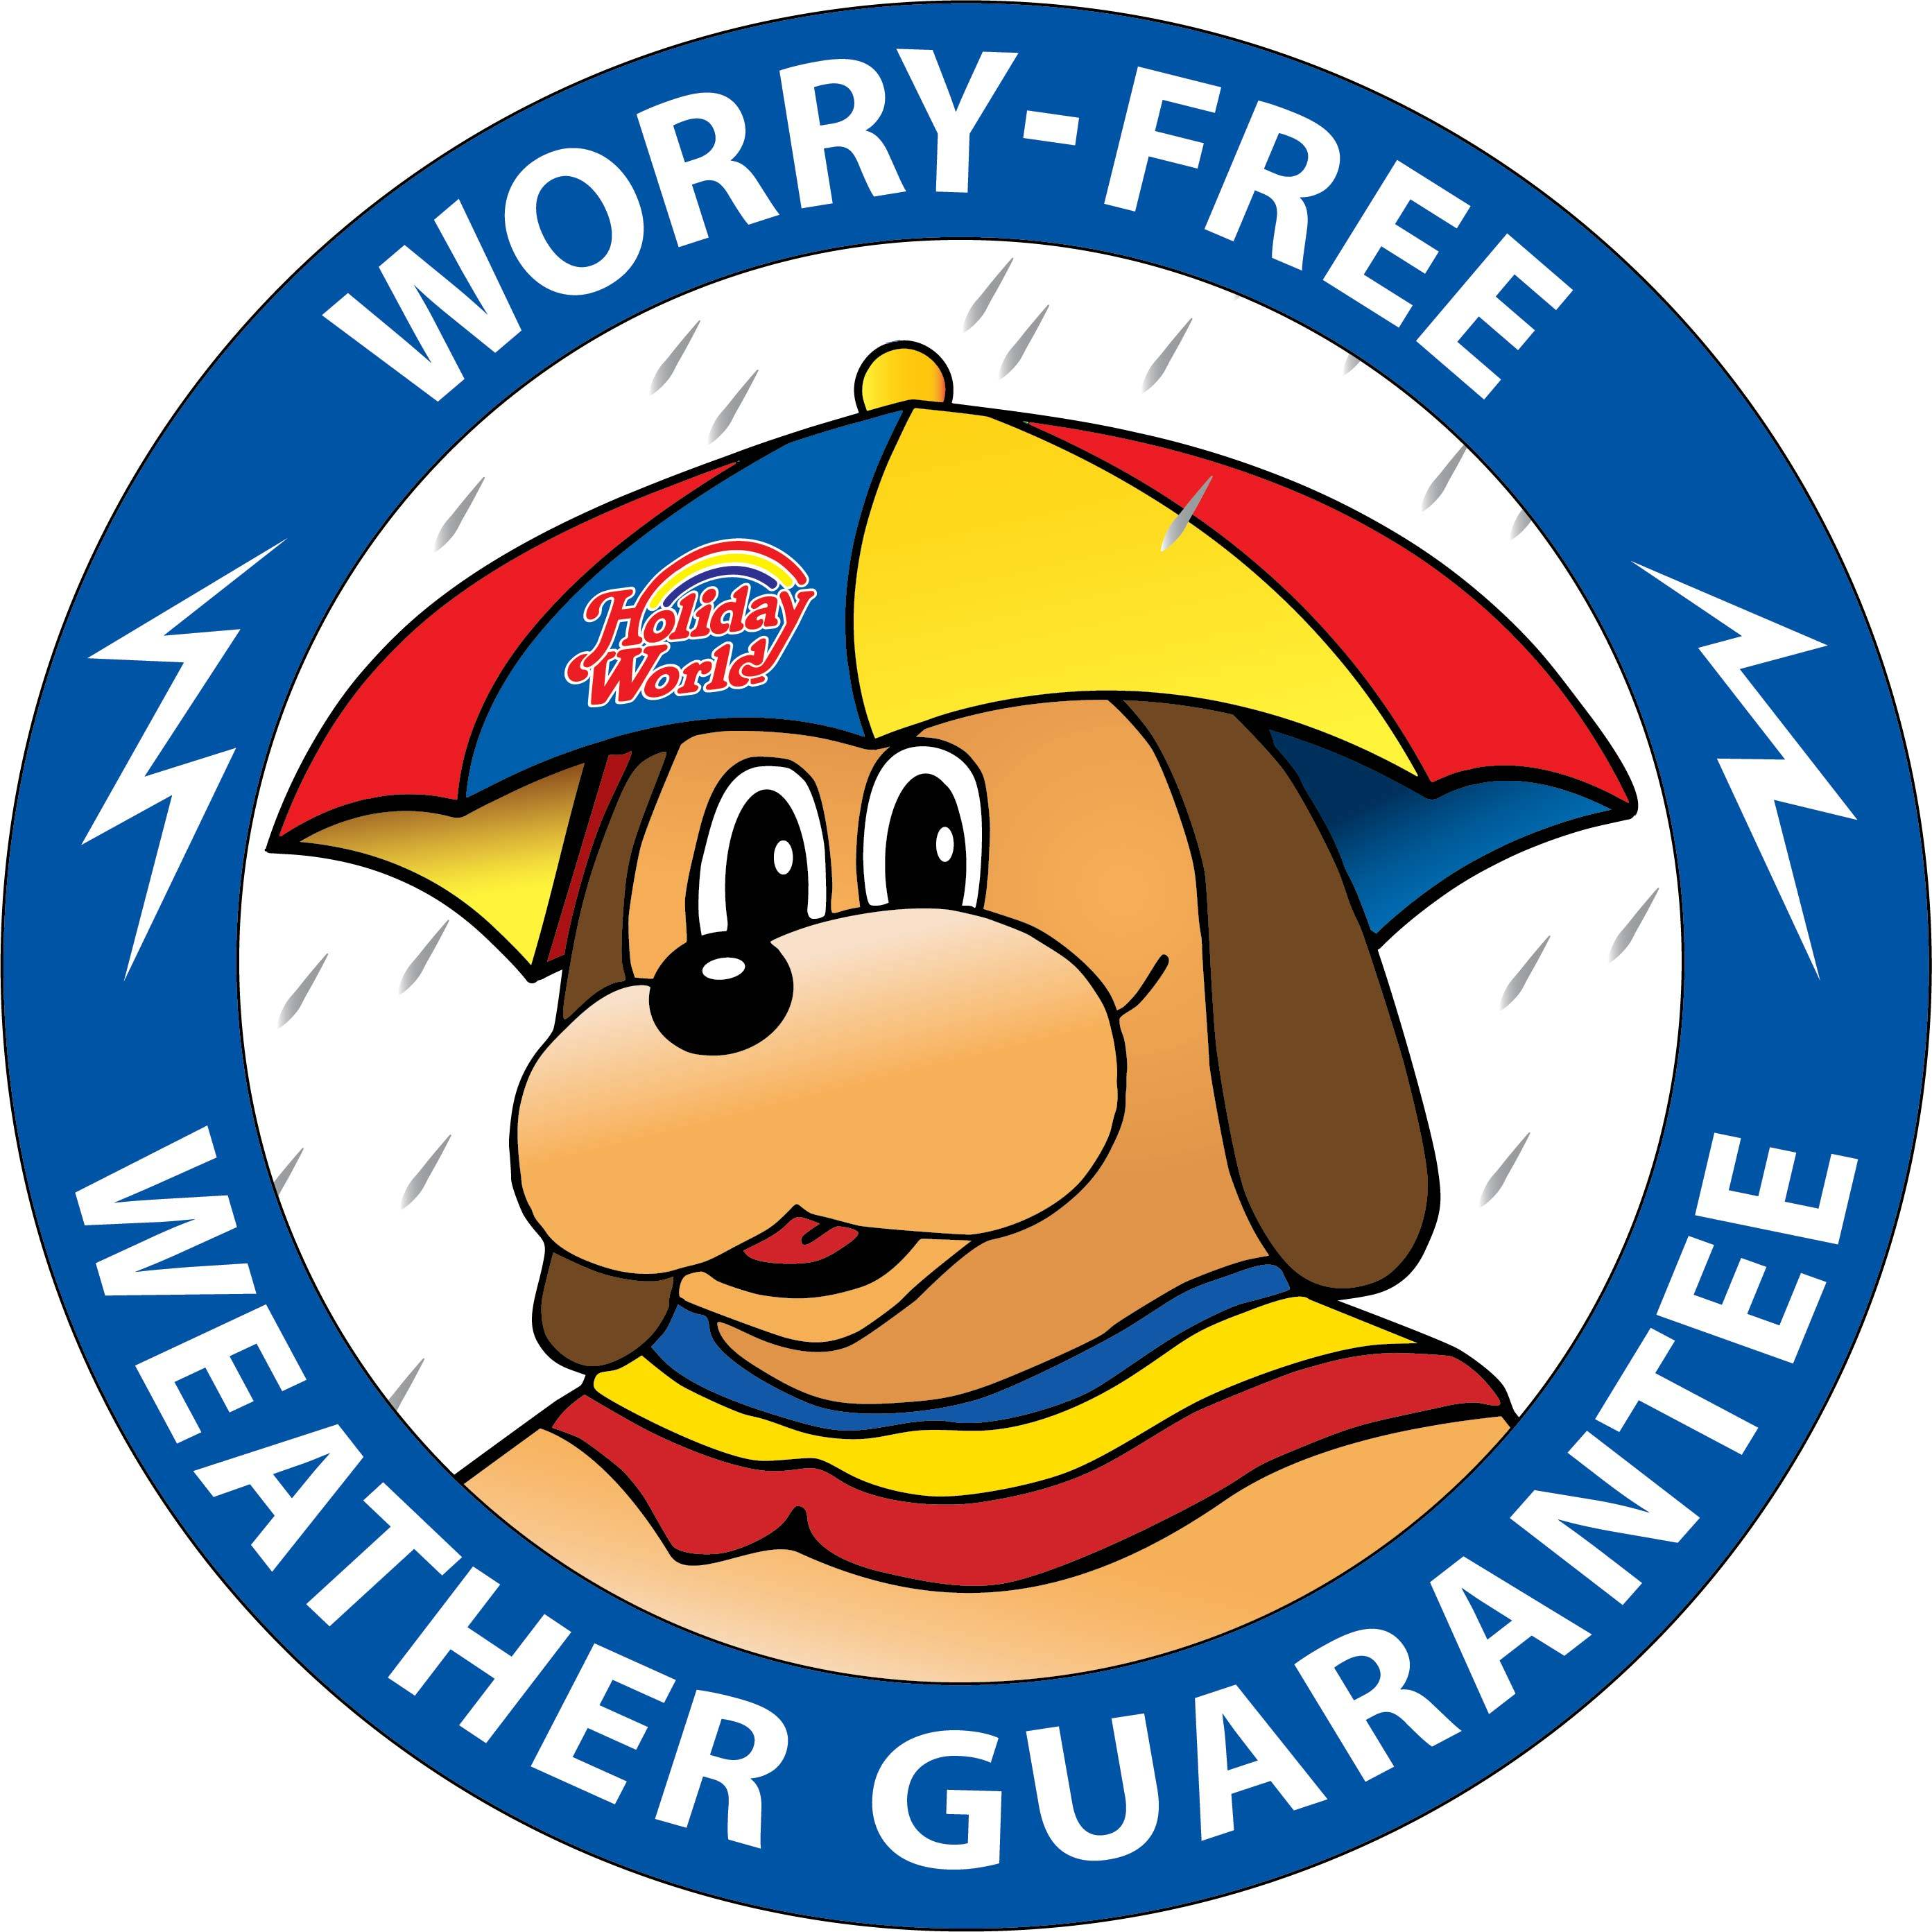 Worry-Free Weather Guarantee